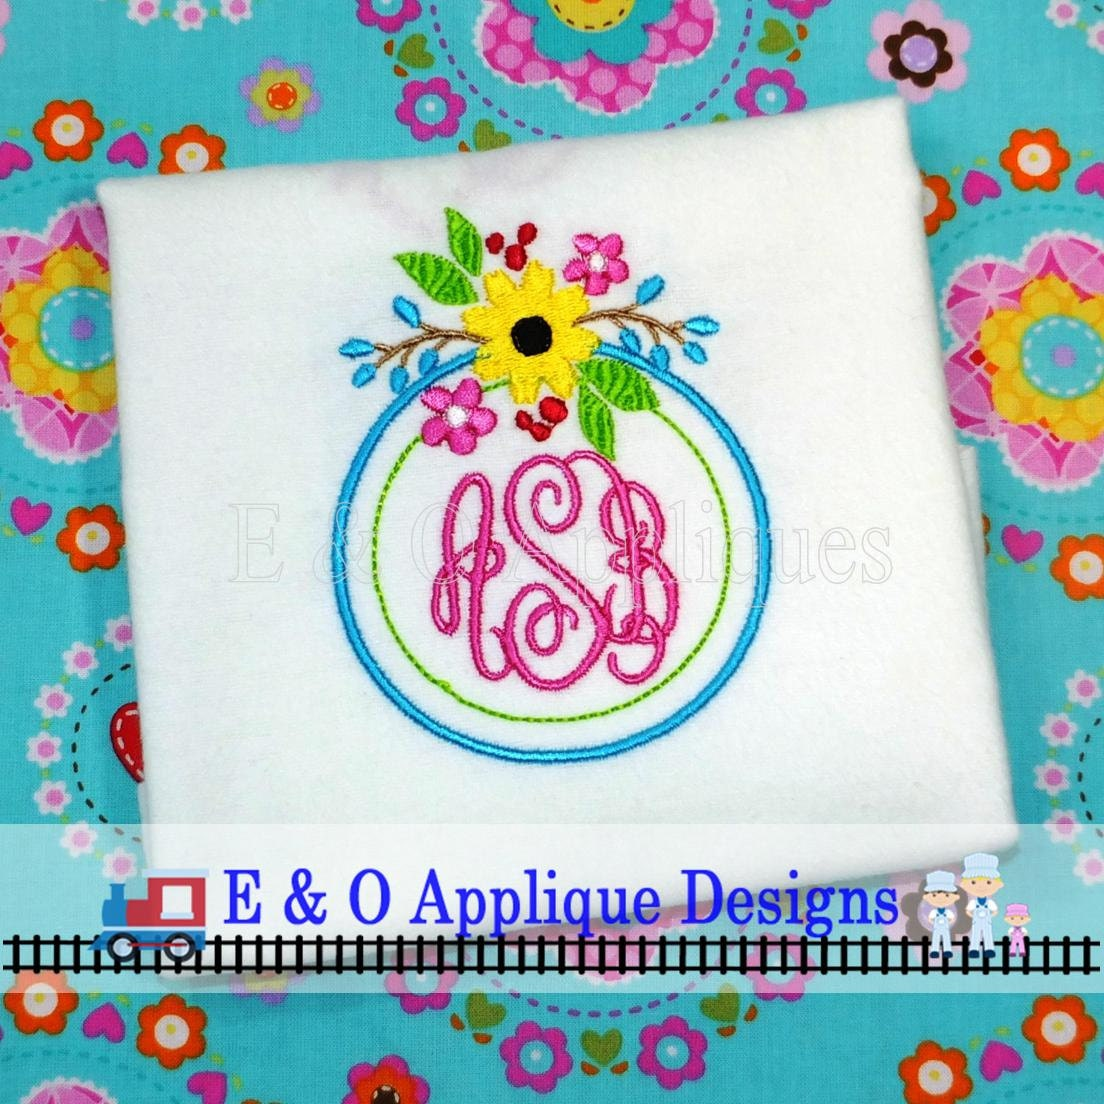 Floral monogram embroidery frame design sizes included